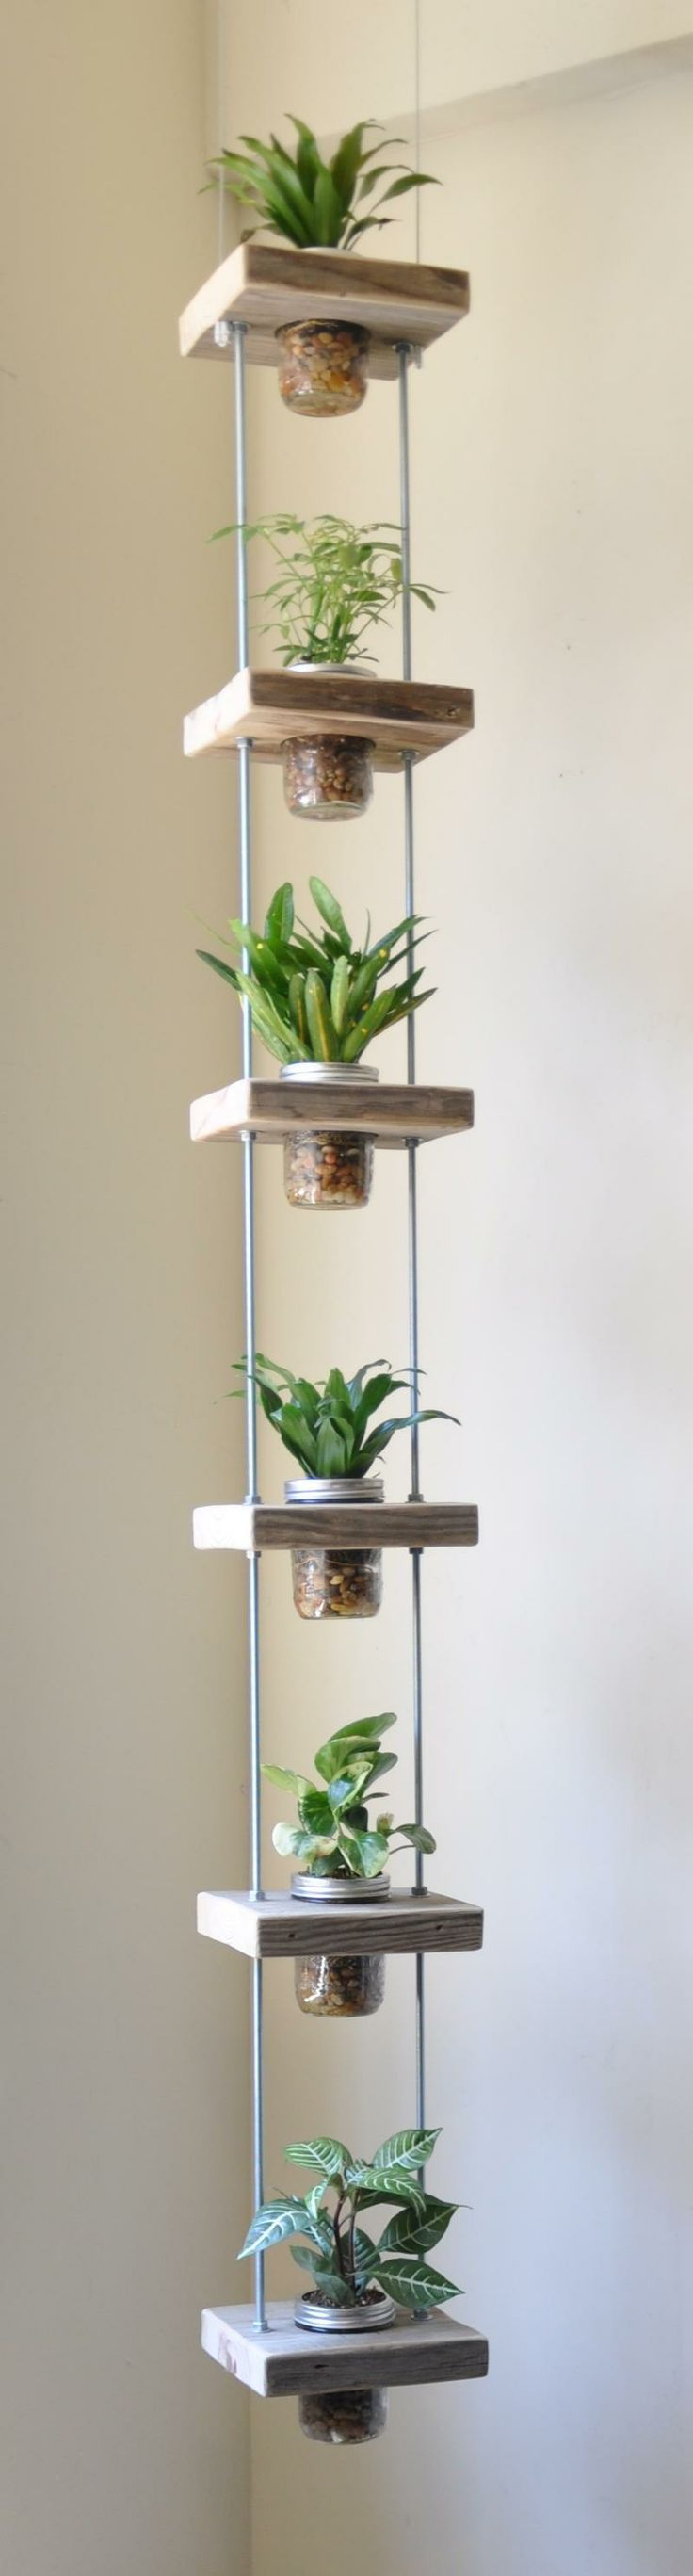 Vertical Indoor Garden 15 phenomenal indoor herb gardens vertical hanging herbs workwithnaturefo